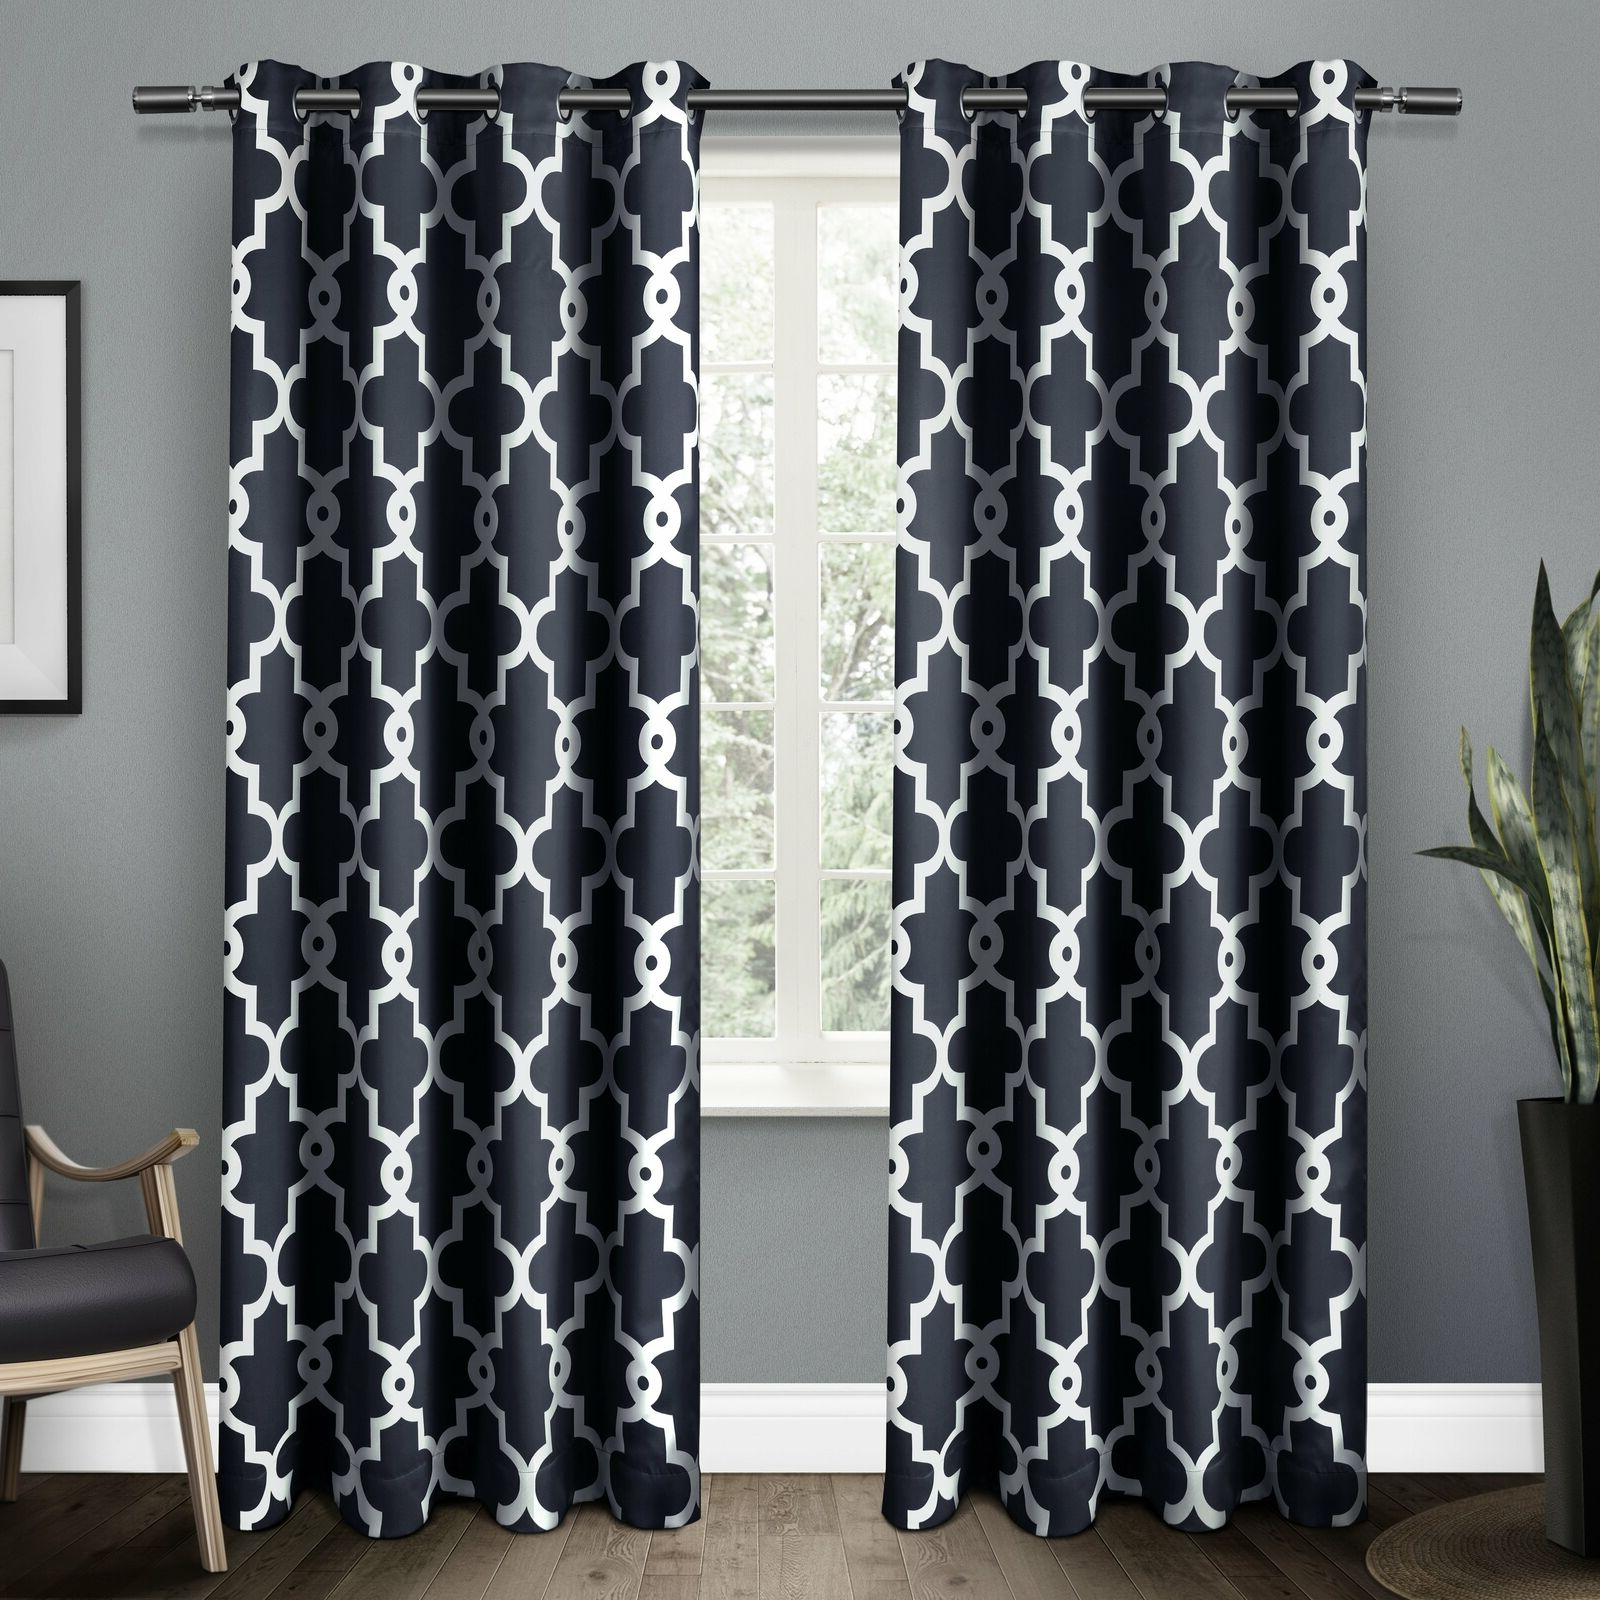 The Curated Nomad Duane Blackout Curtain Panel Pair Throughout Trendy The Curated Nomad Duane Jacquard Grommet Top Curtain Panel Pairs (View 9 of 21)